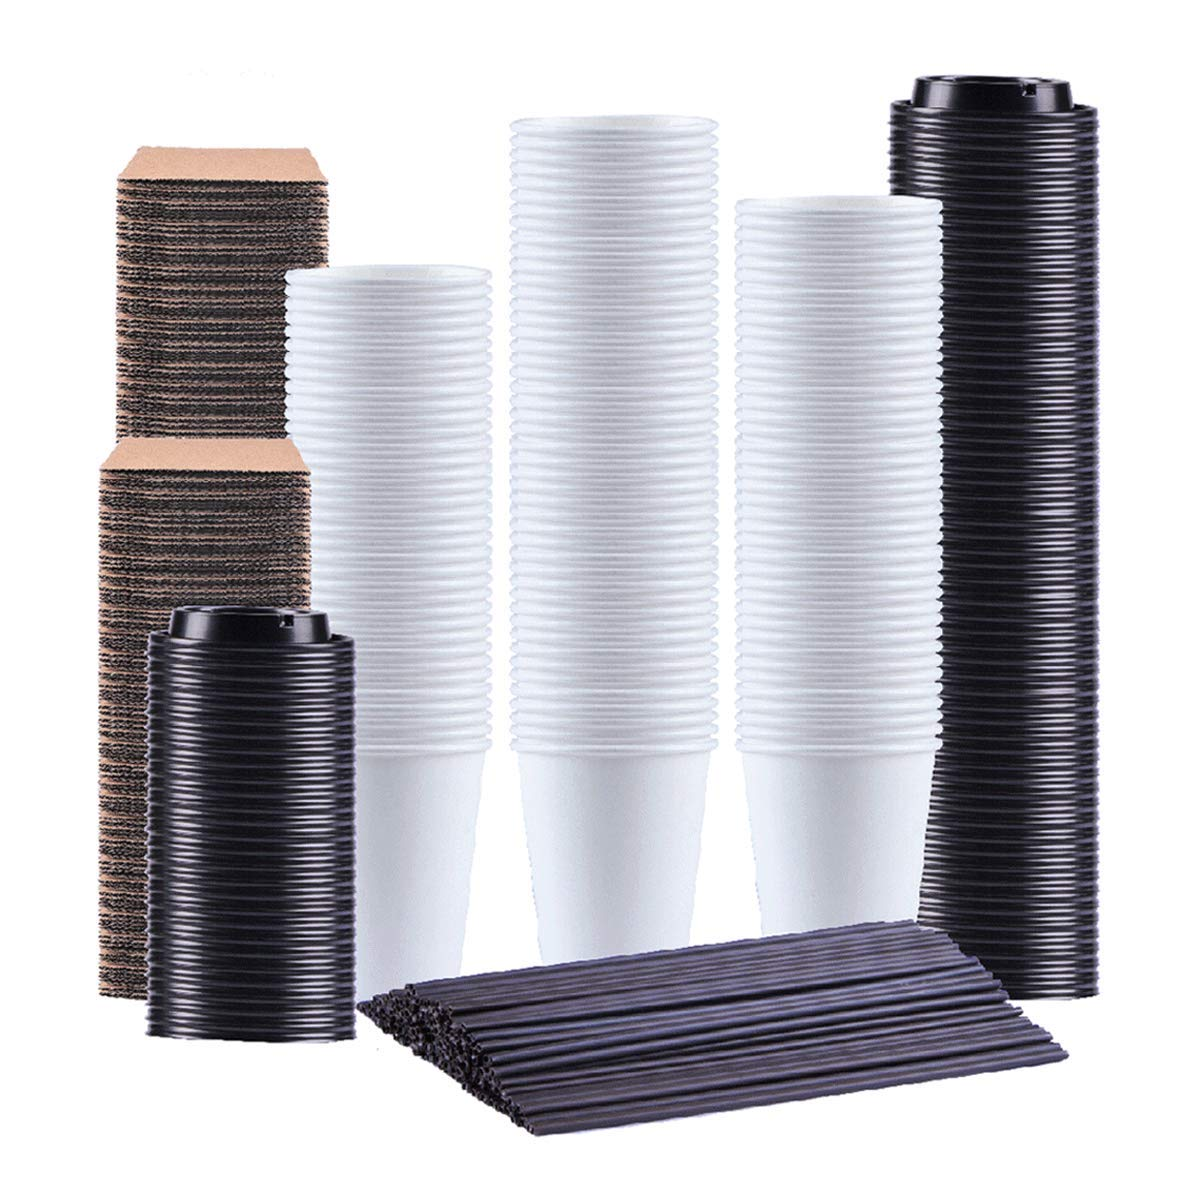 Kindpack Disposable Coffee Cups 12 oz,110 Count,With Lids Sleeves and Straws,Durable White Paper Hot Cup Perfect for Coffee, Cappuccino or Latte